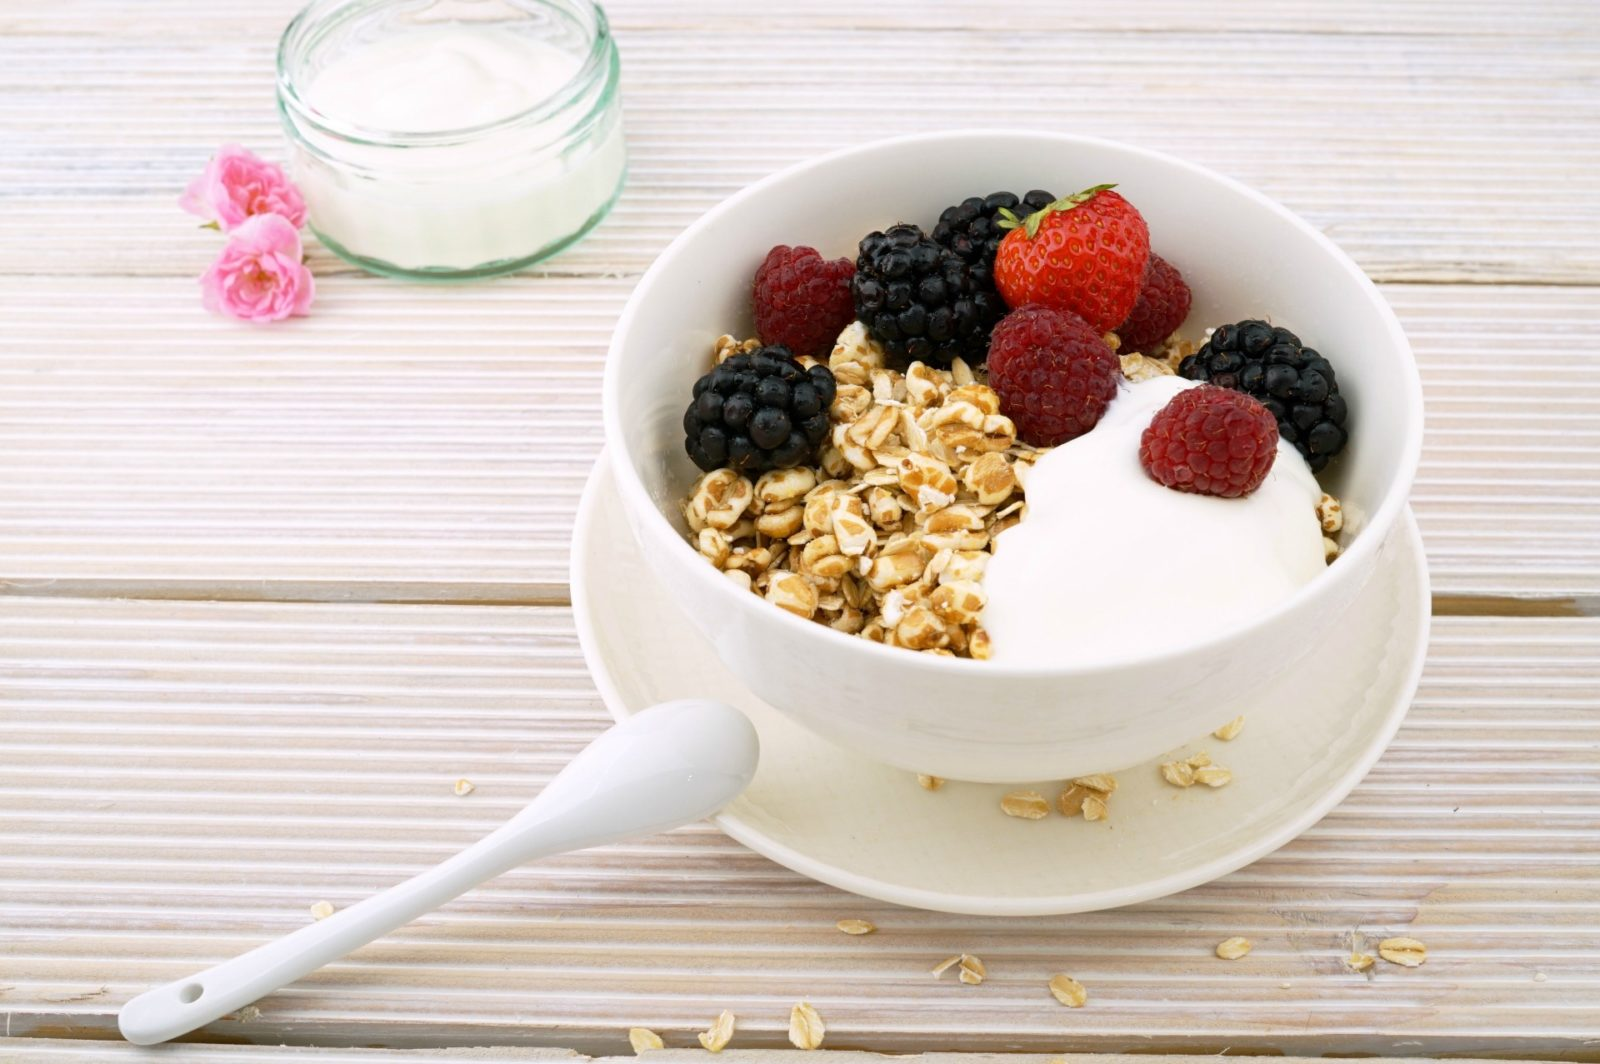 Yogurt is a good example of a food rich in probiotics.